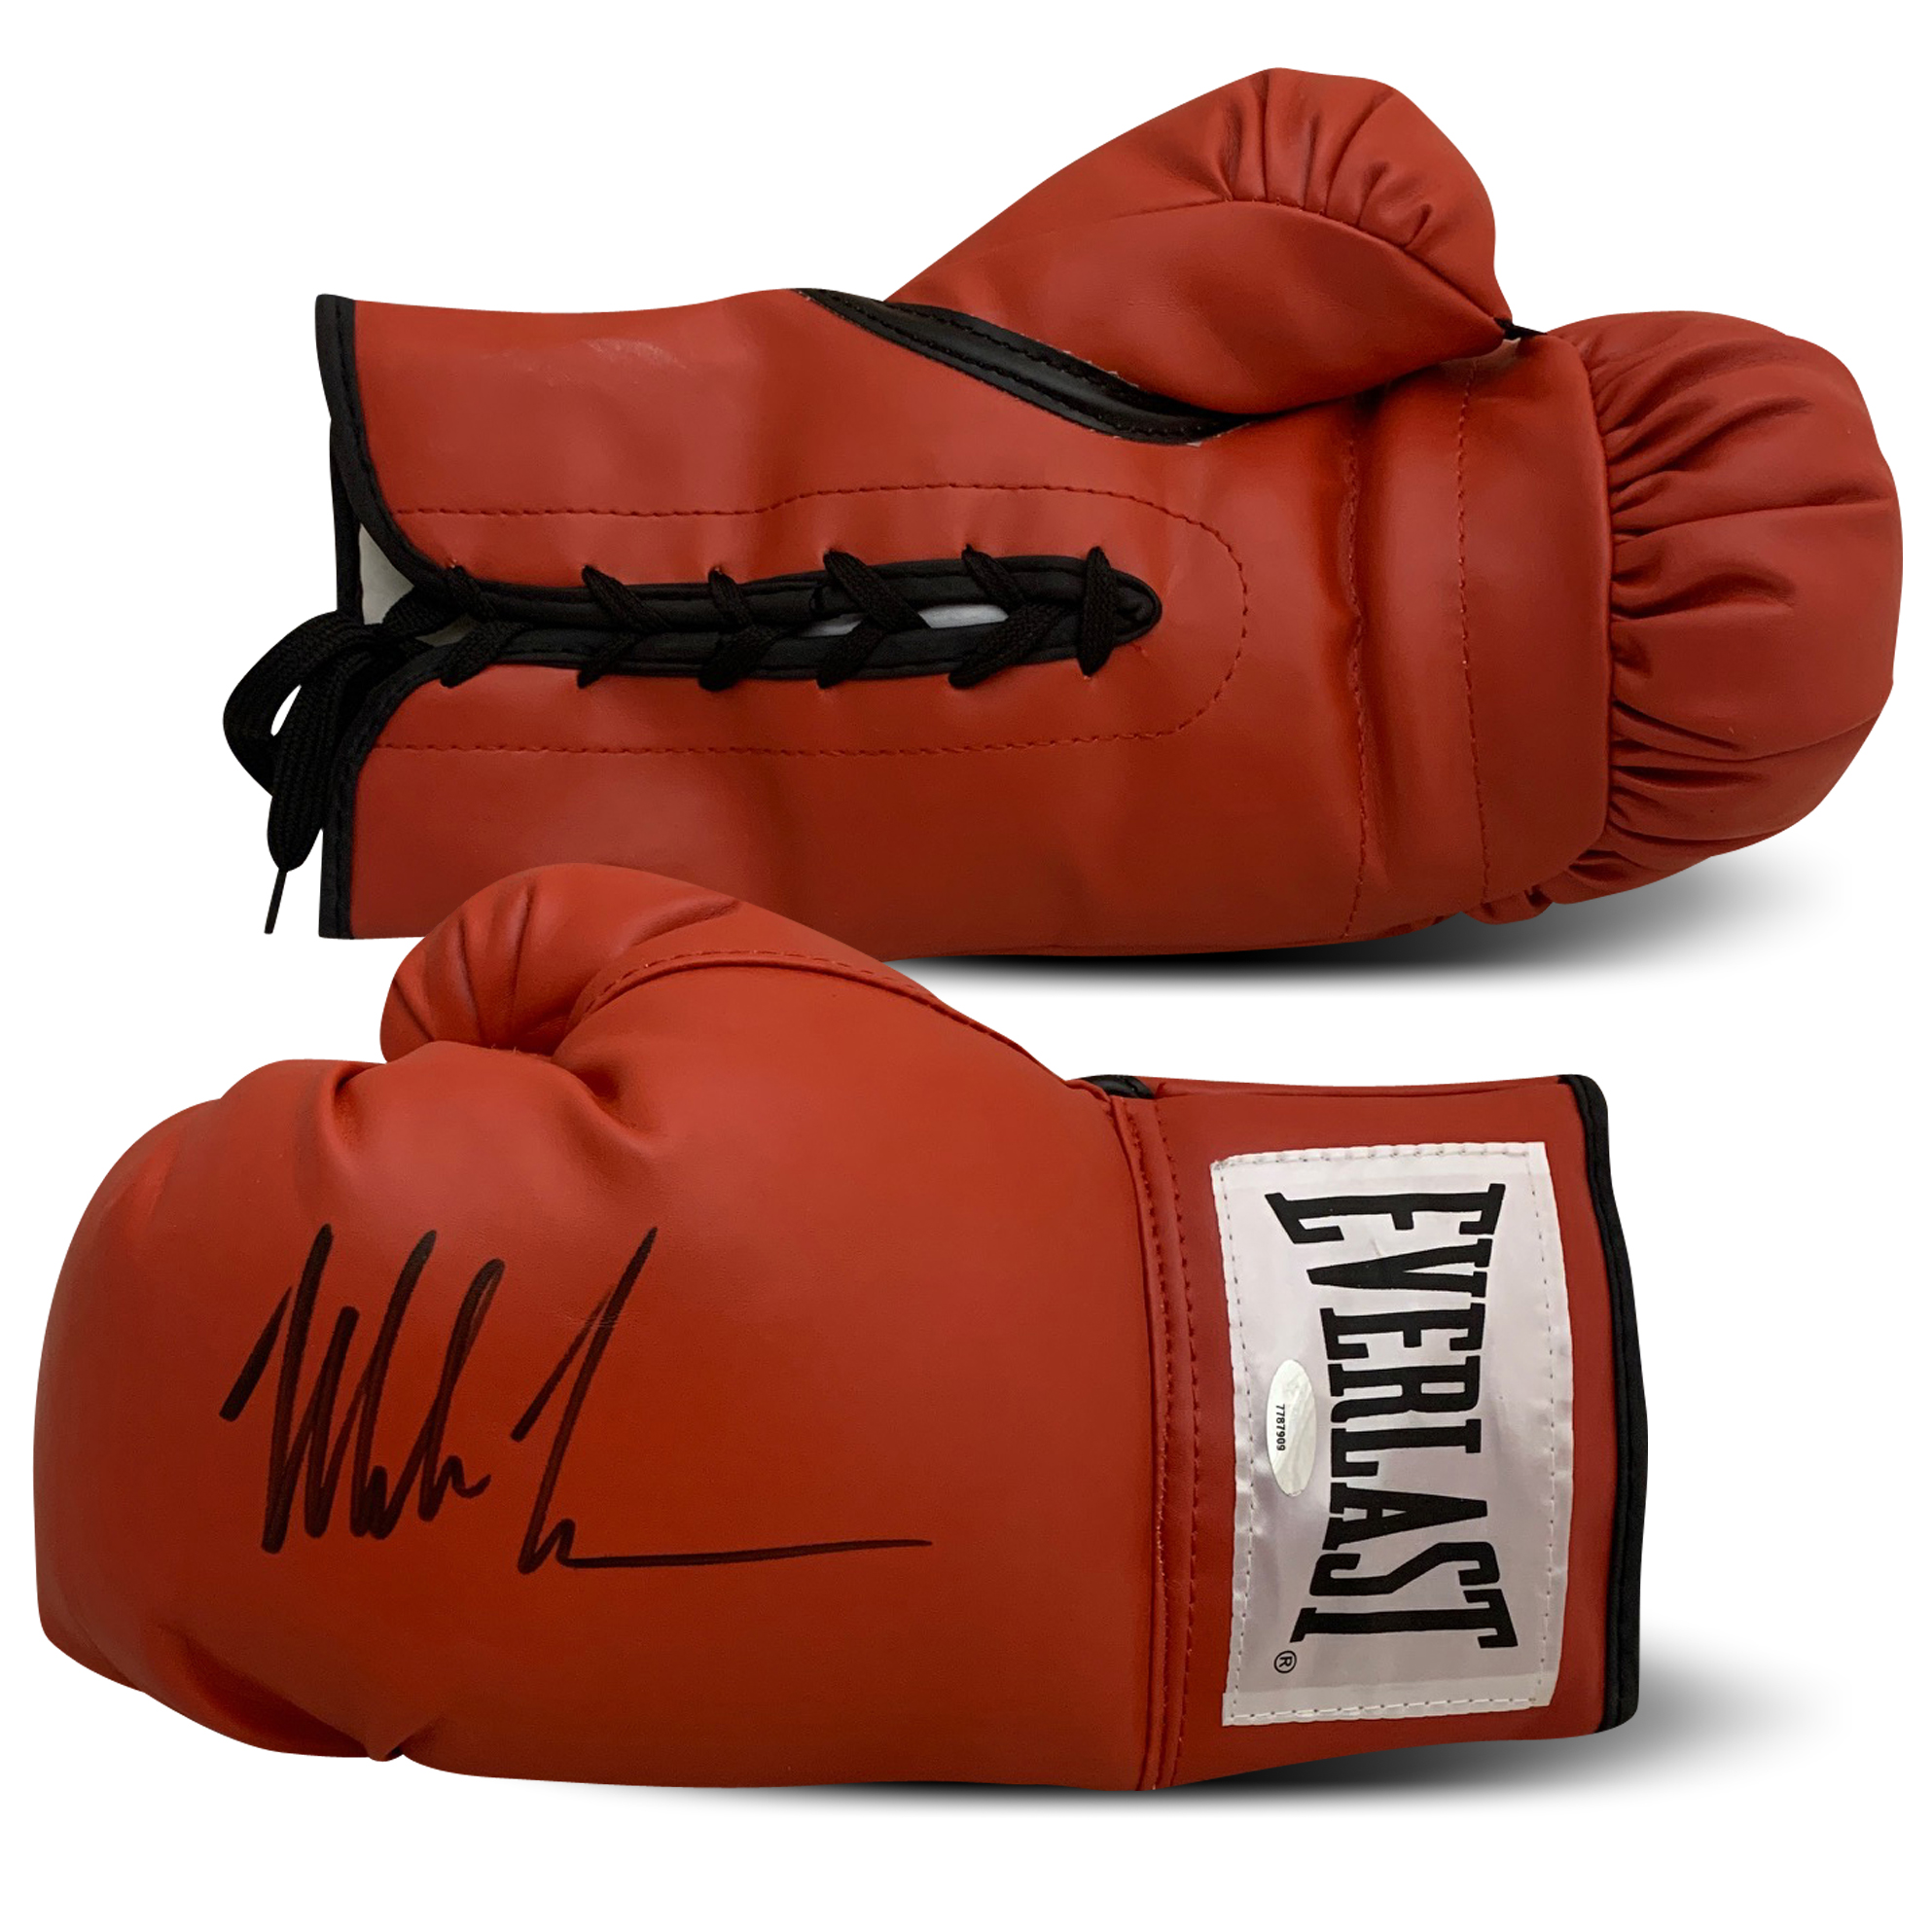 Mike Tyson Autographed Everlast Red Boxing Glove TRISTAR AUTHENTIC COA Boxing legend Mike Tyson has autographed this left handed boxing glove.  Item comes with 1 glove signed by Tyson in black.  Autograph is authenticated by TRISTAR. Item comes with TRISTAR's unique hologram # which is verified on their website. Once verified states the item and date that it was signed.